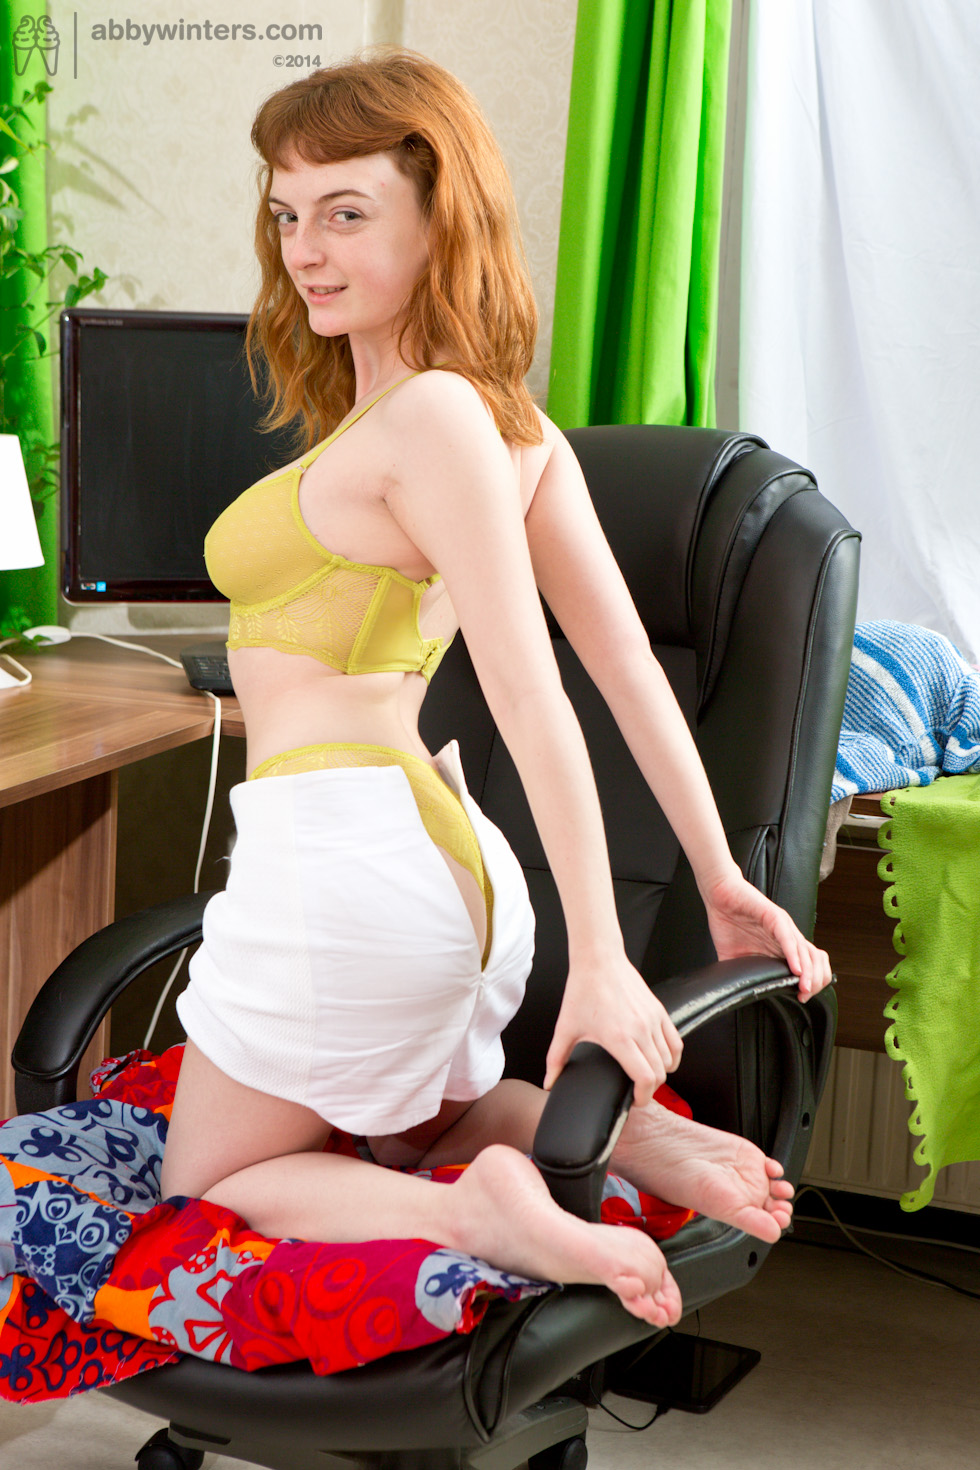 nude-girl-in-office-chair